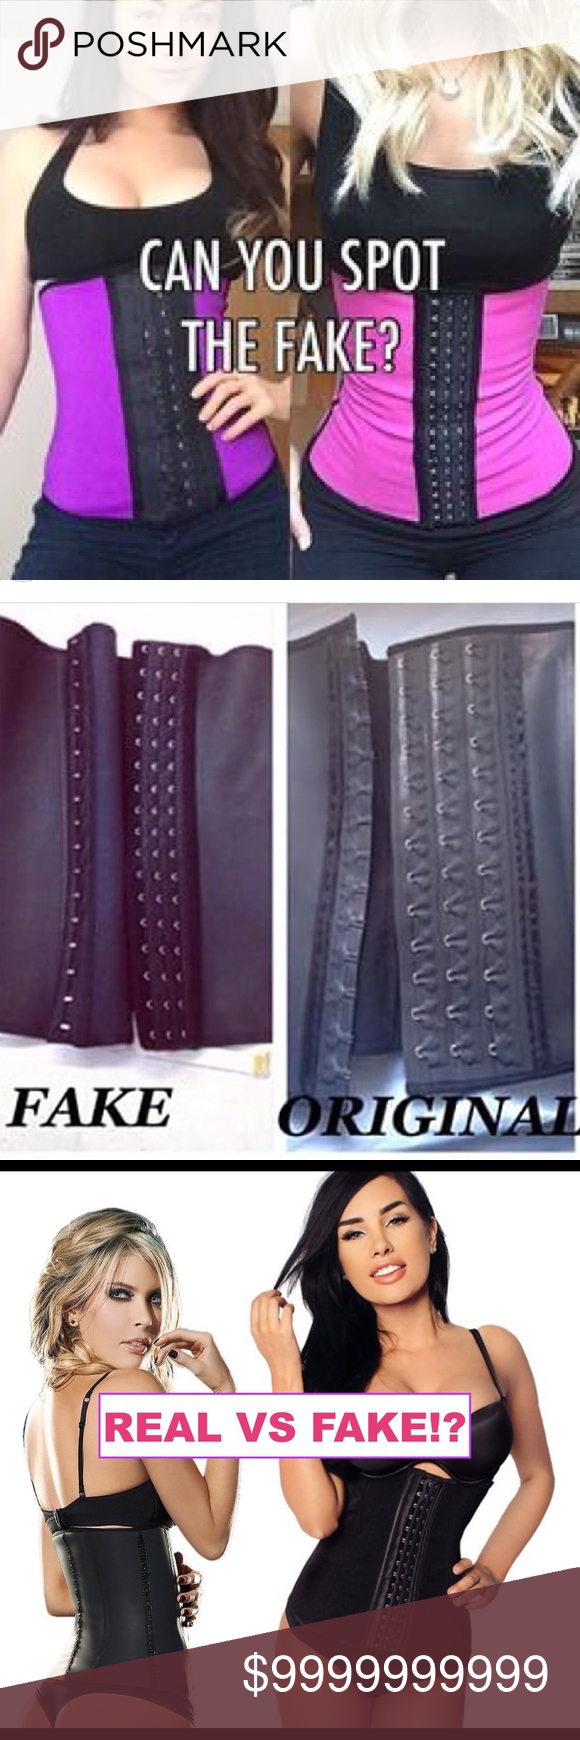 636daef6fa4 Why Choose 100% Colombian Waist Trainer vs Chinese Many consumers don t  realize that there s an epidemic of FAKE Waist Trainers flooding our market  until ...